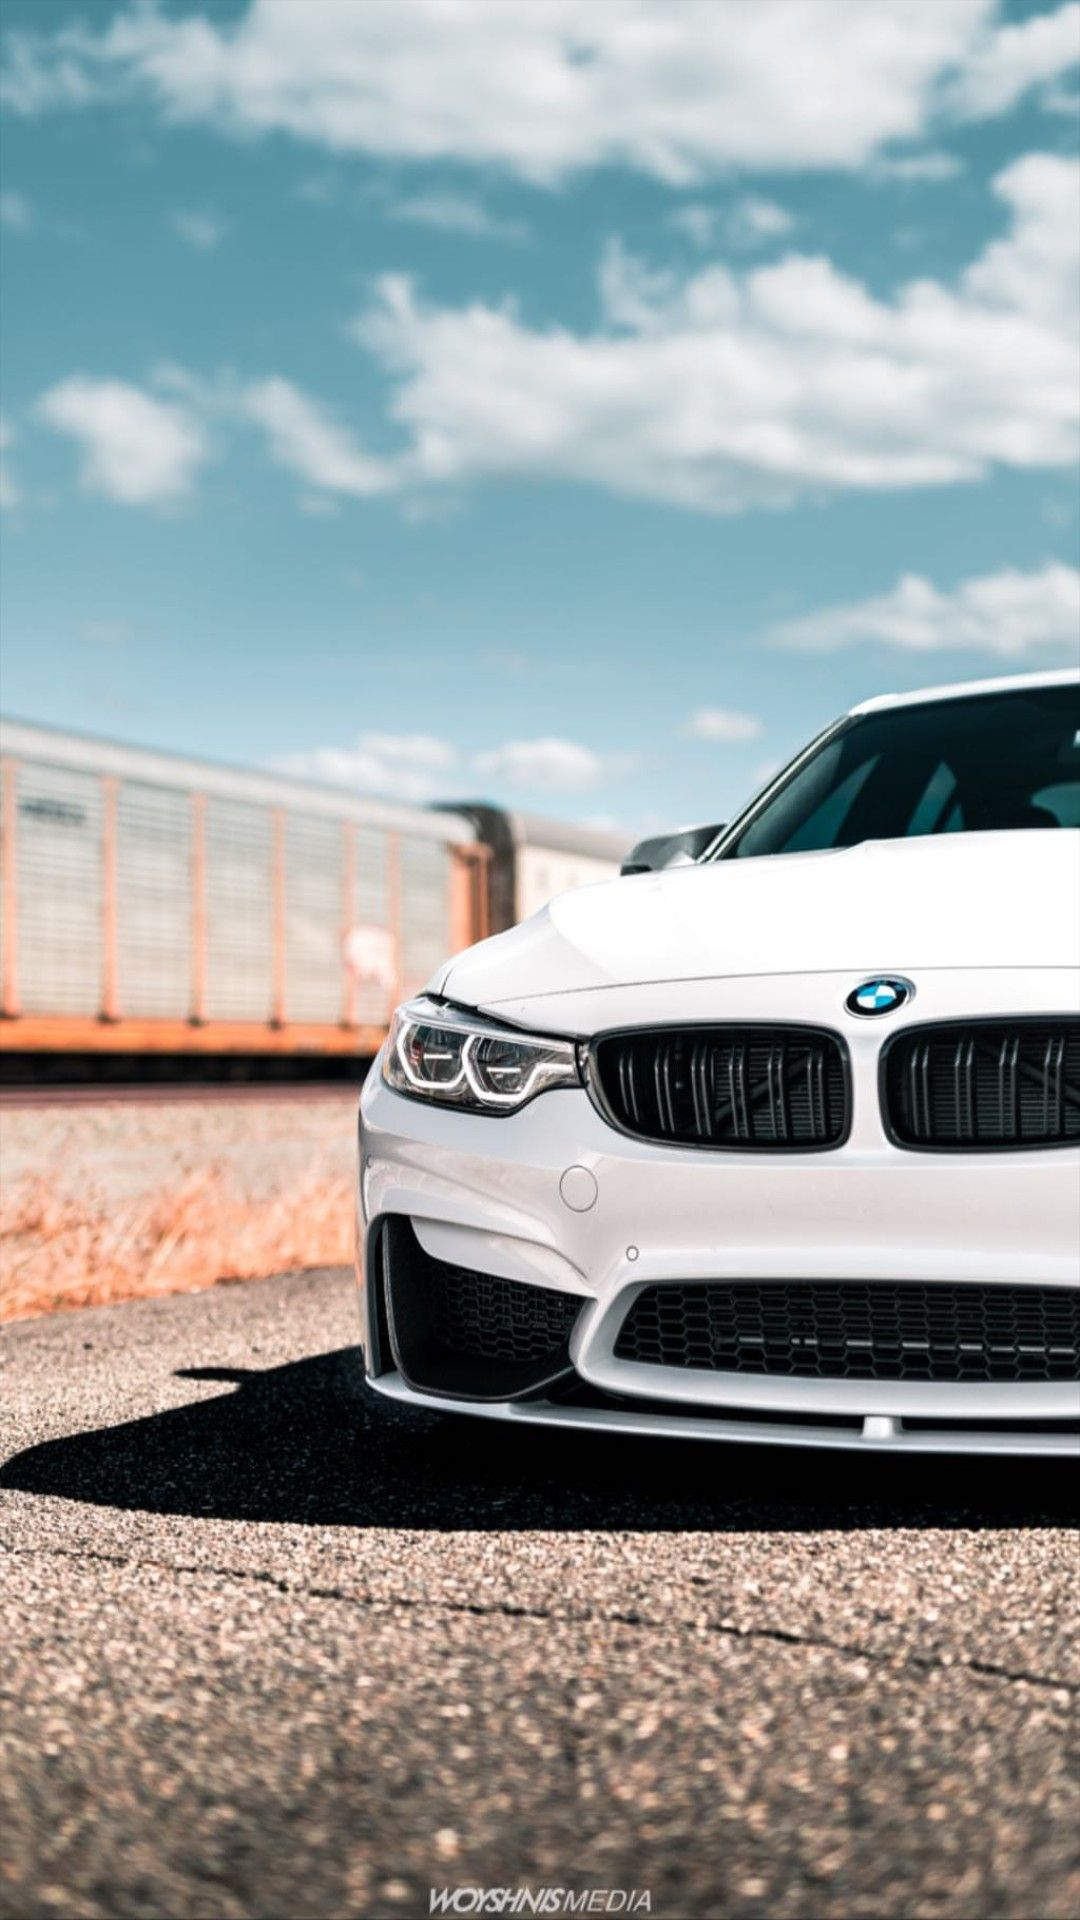 Anime Image By Lewis Bacott Car Wallpapers Bmw Wallpapers Bmw